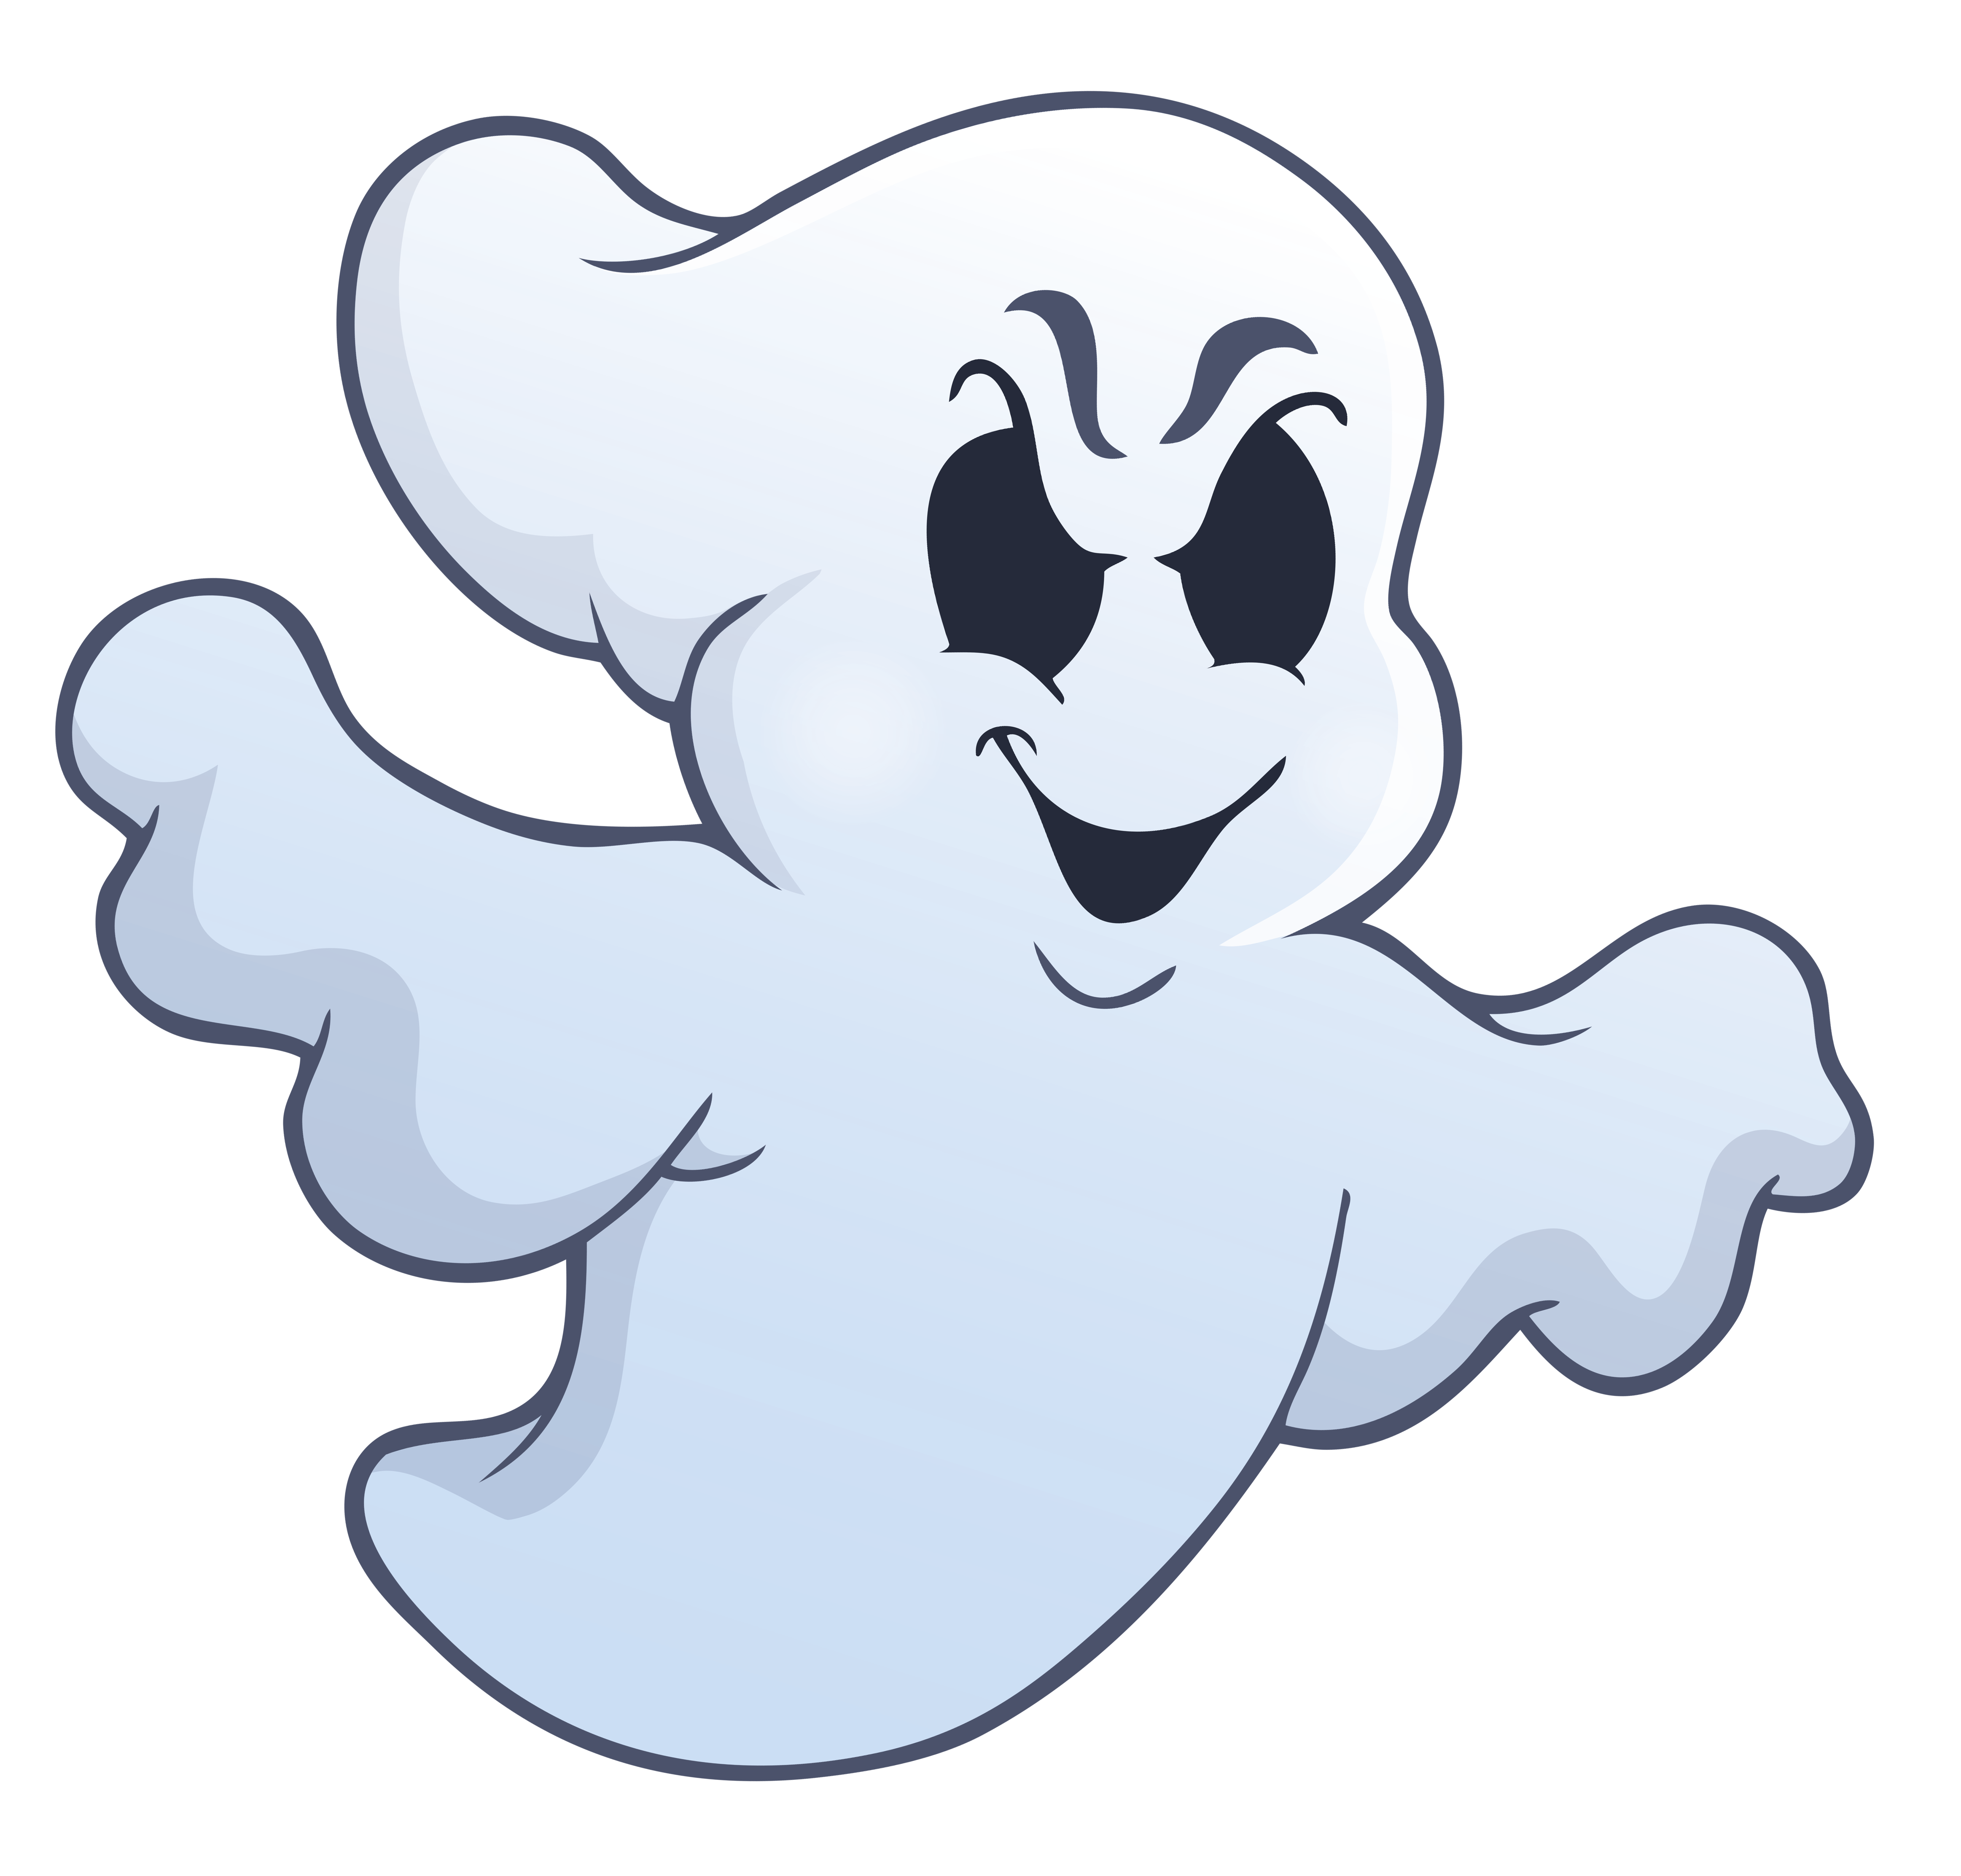 Squid clipart cartoon evil. Halloween ghost png picture